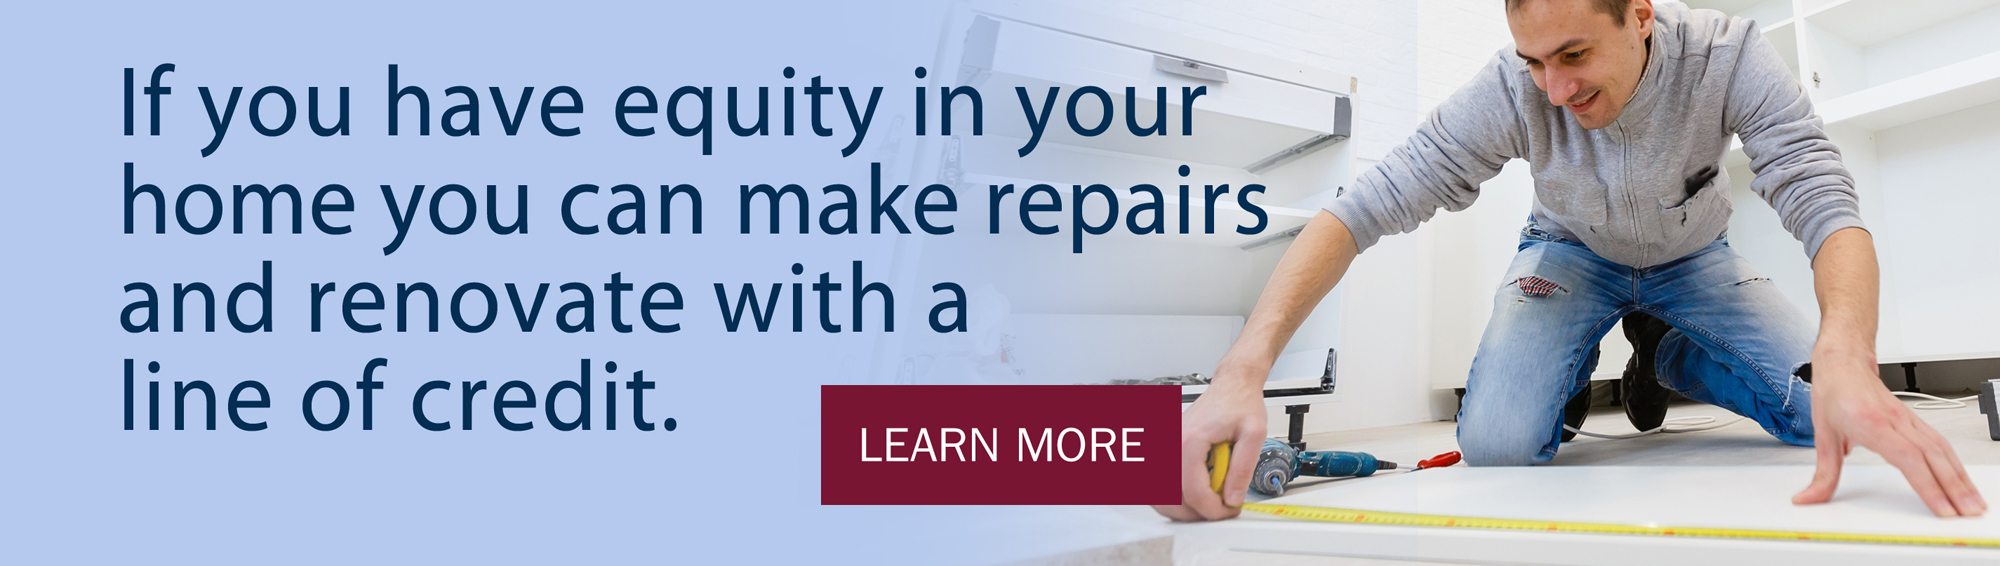 make repairs and renovate with a line of credit